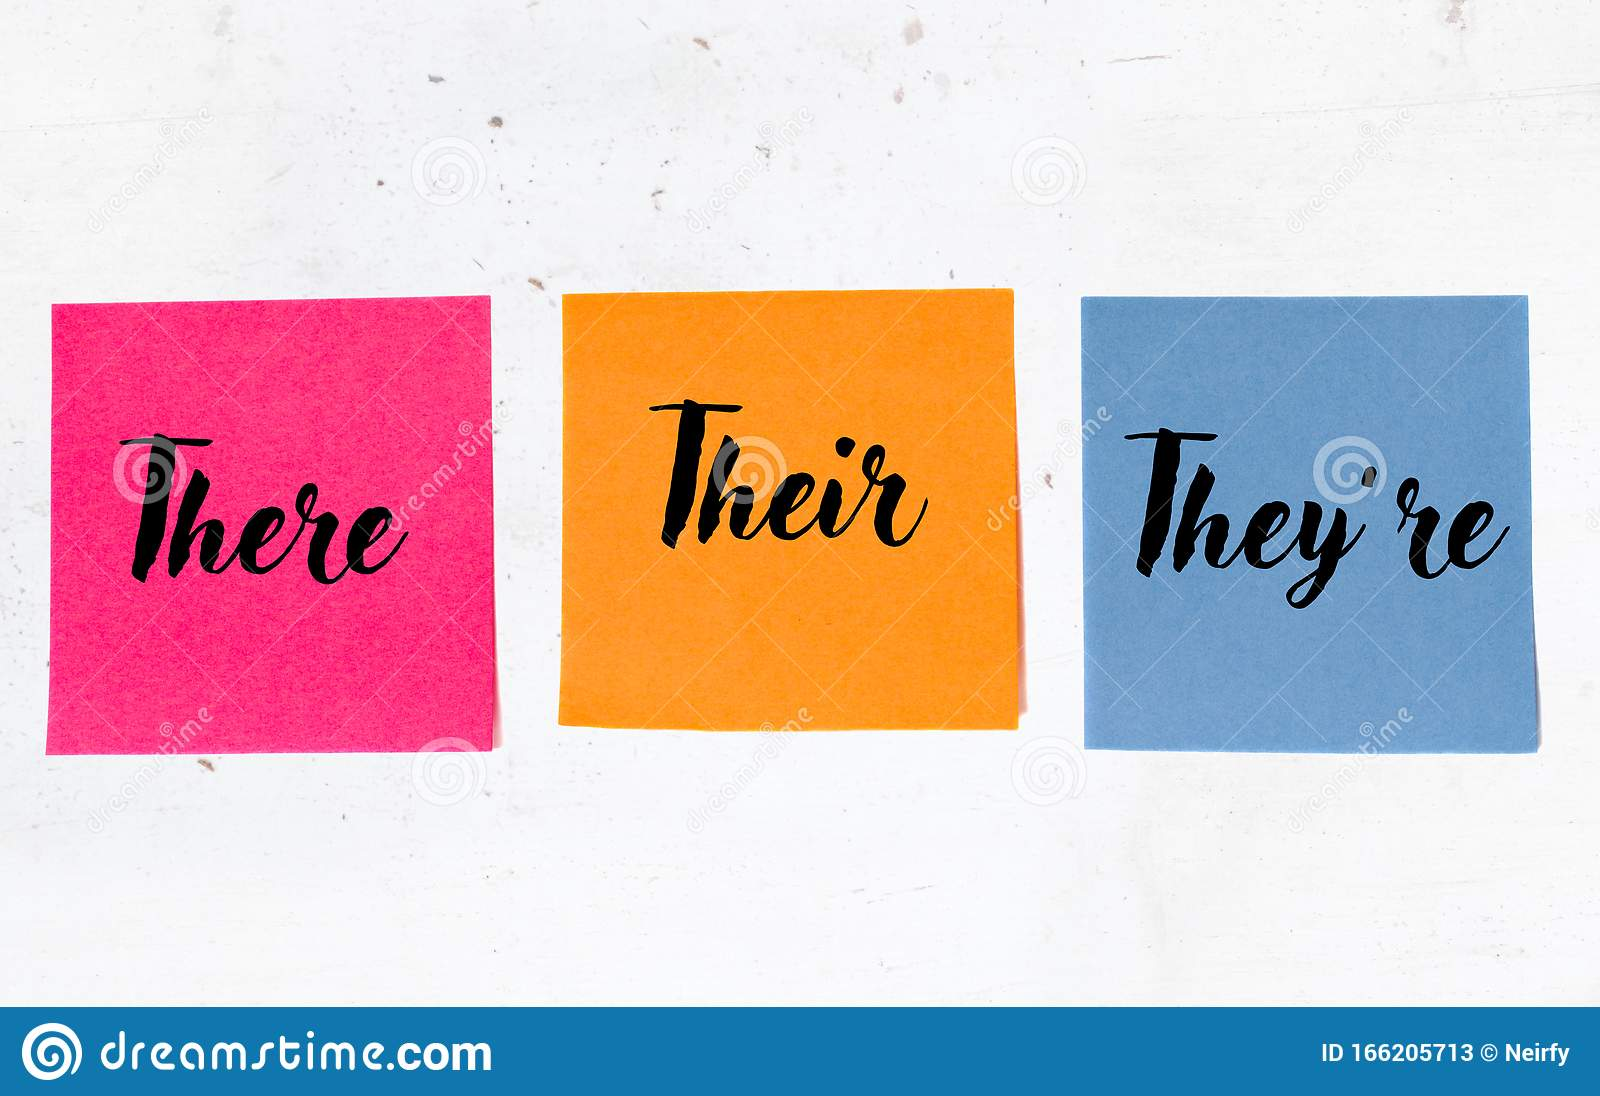 Grammar Of There Their They Re On Three Sticky Notes